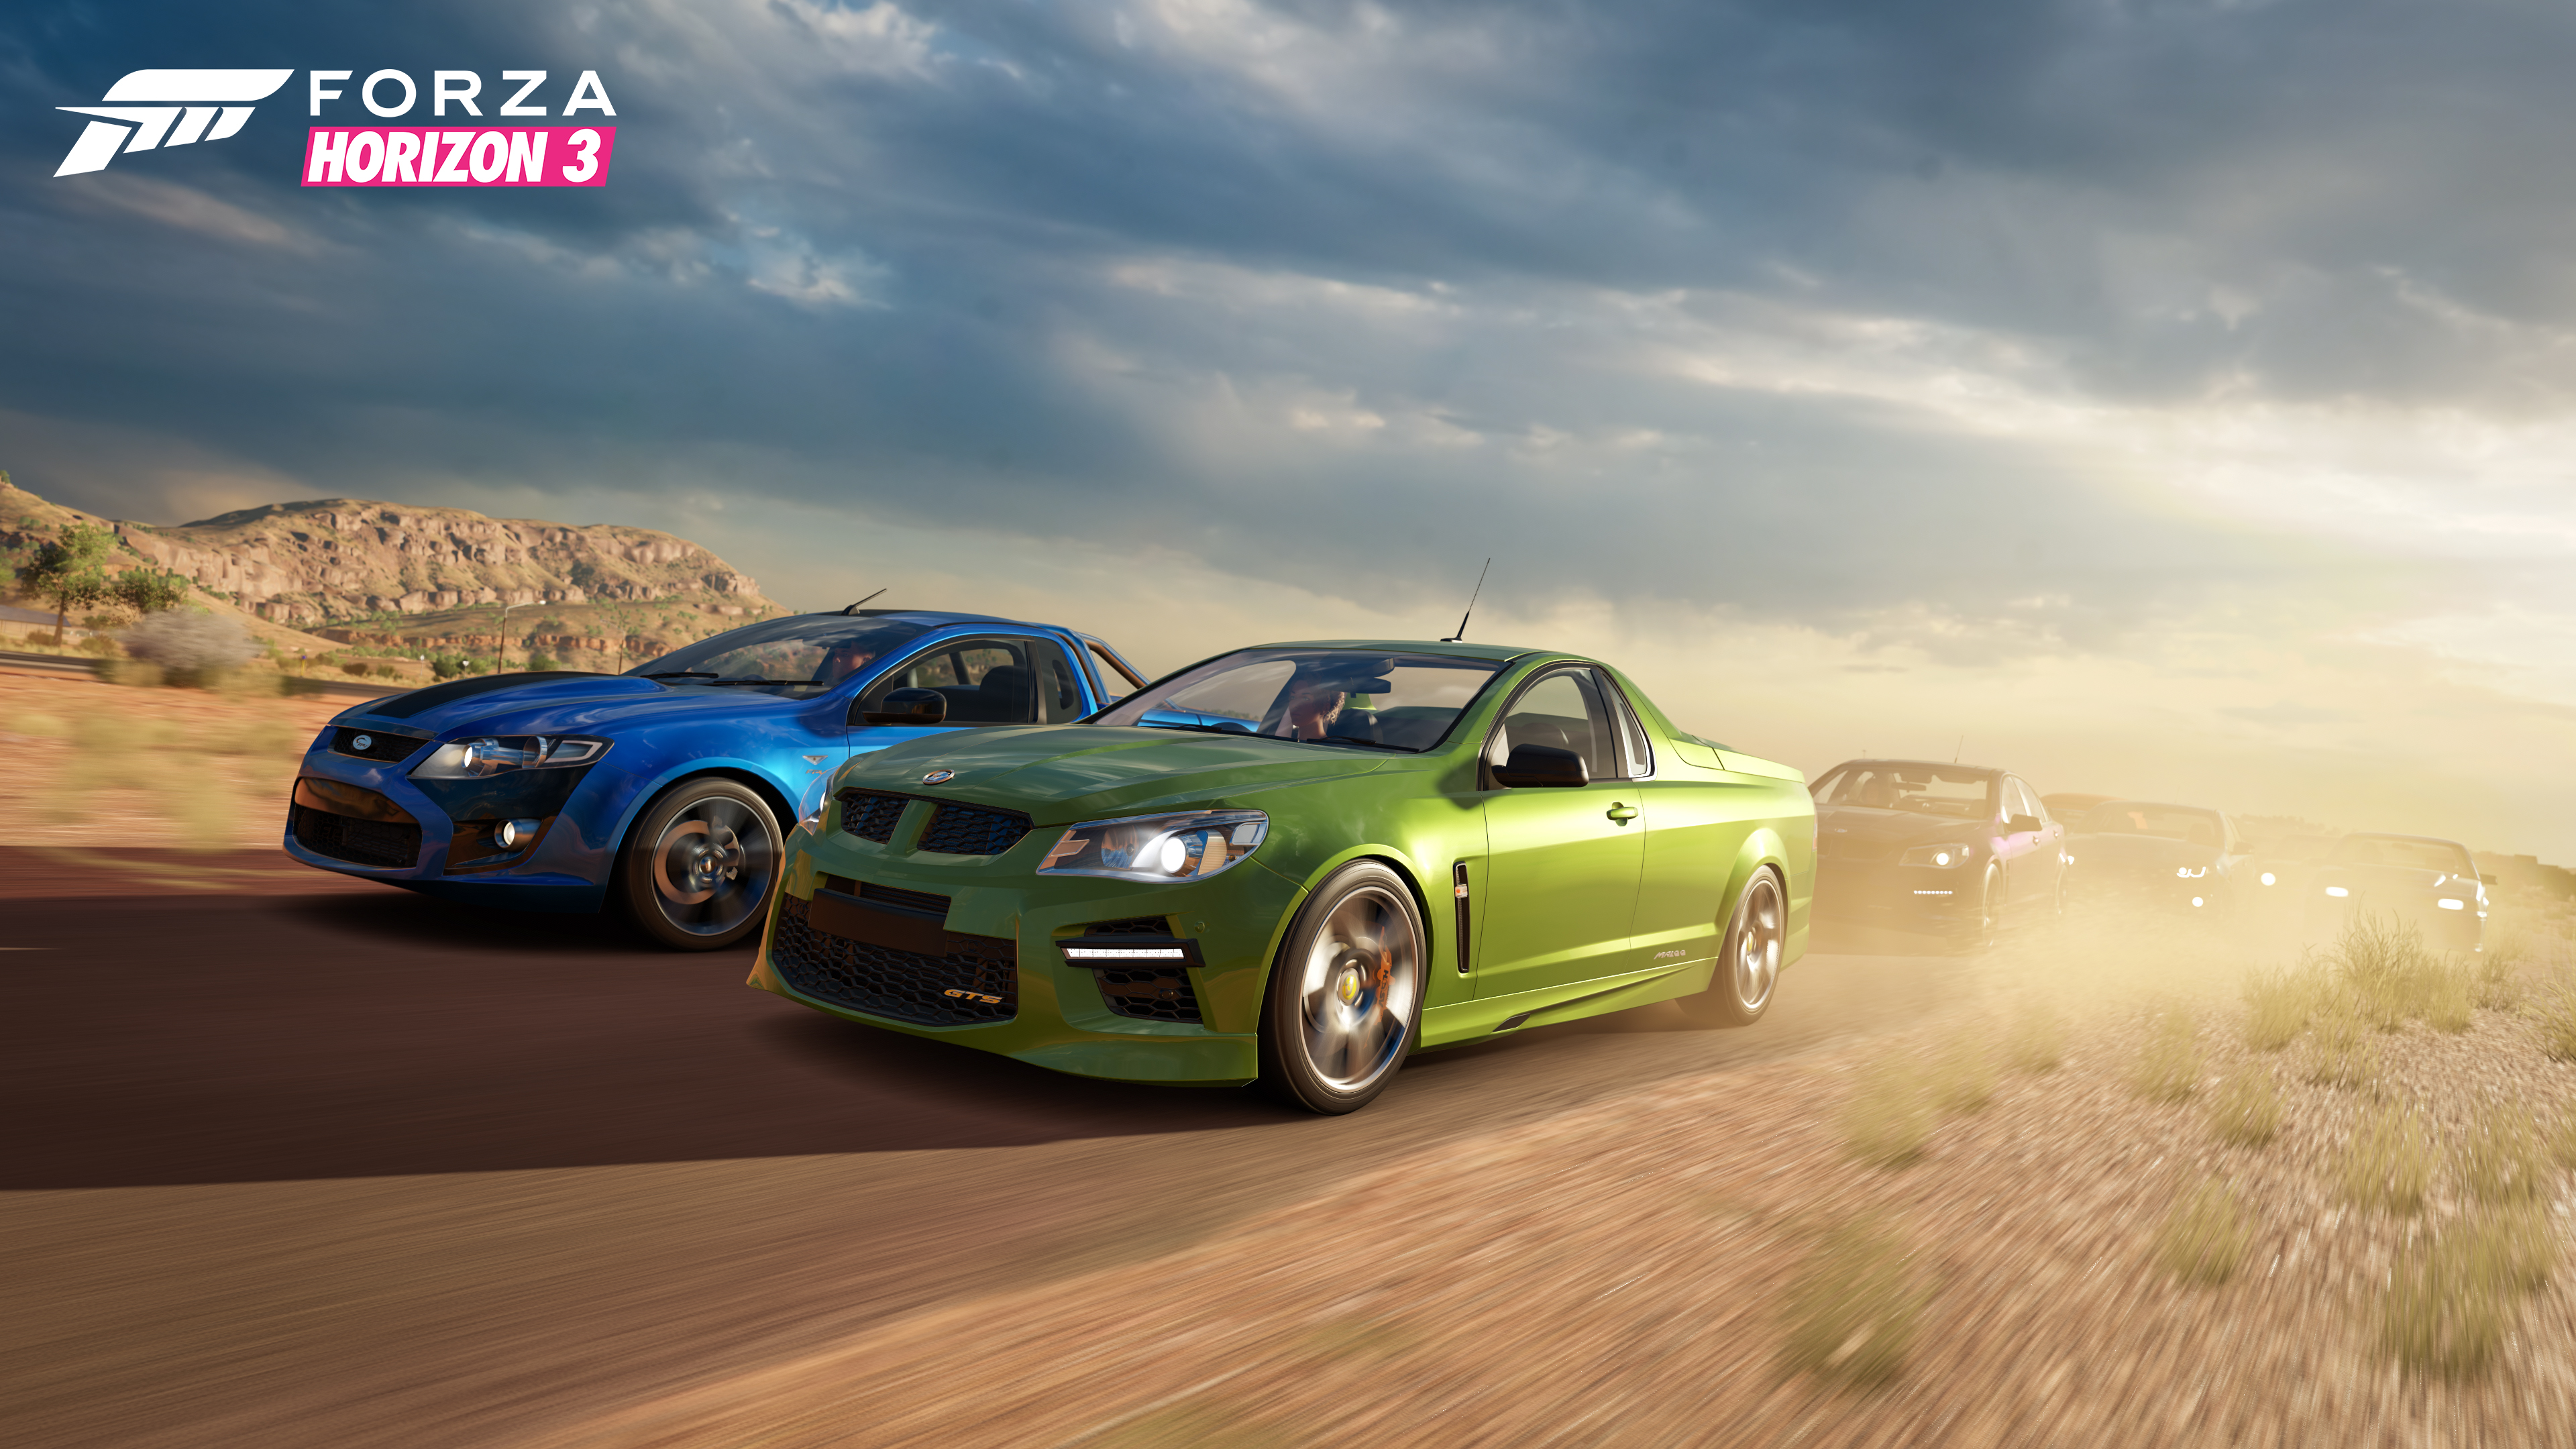 Aussie Cars in Forza Horizon 3